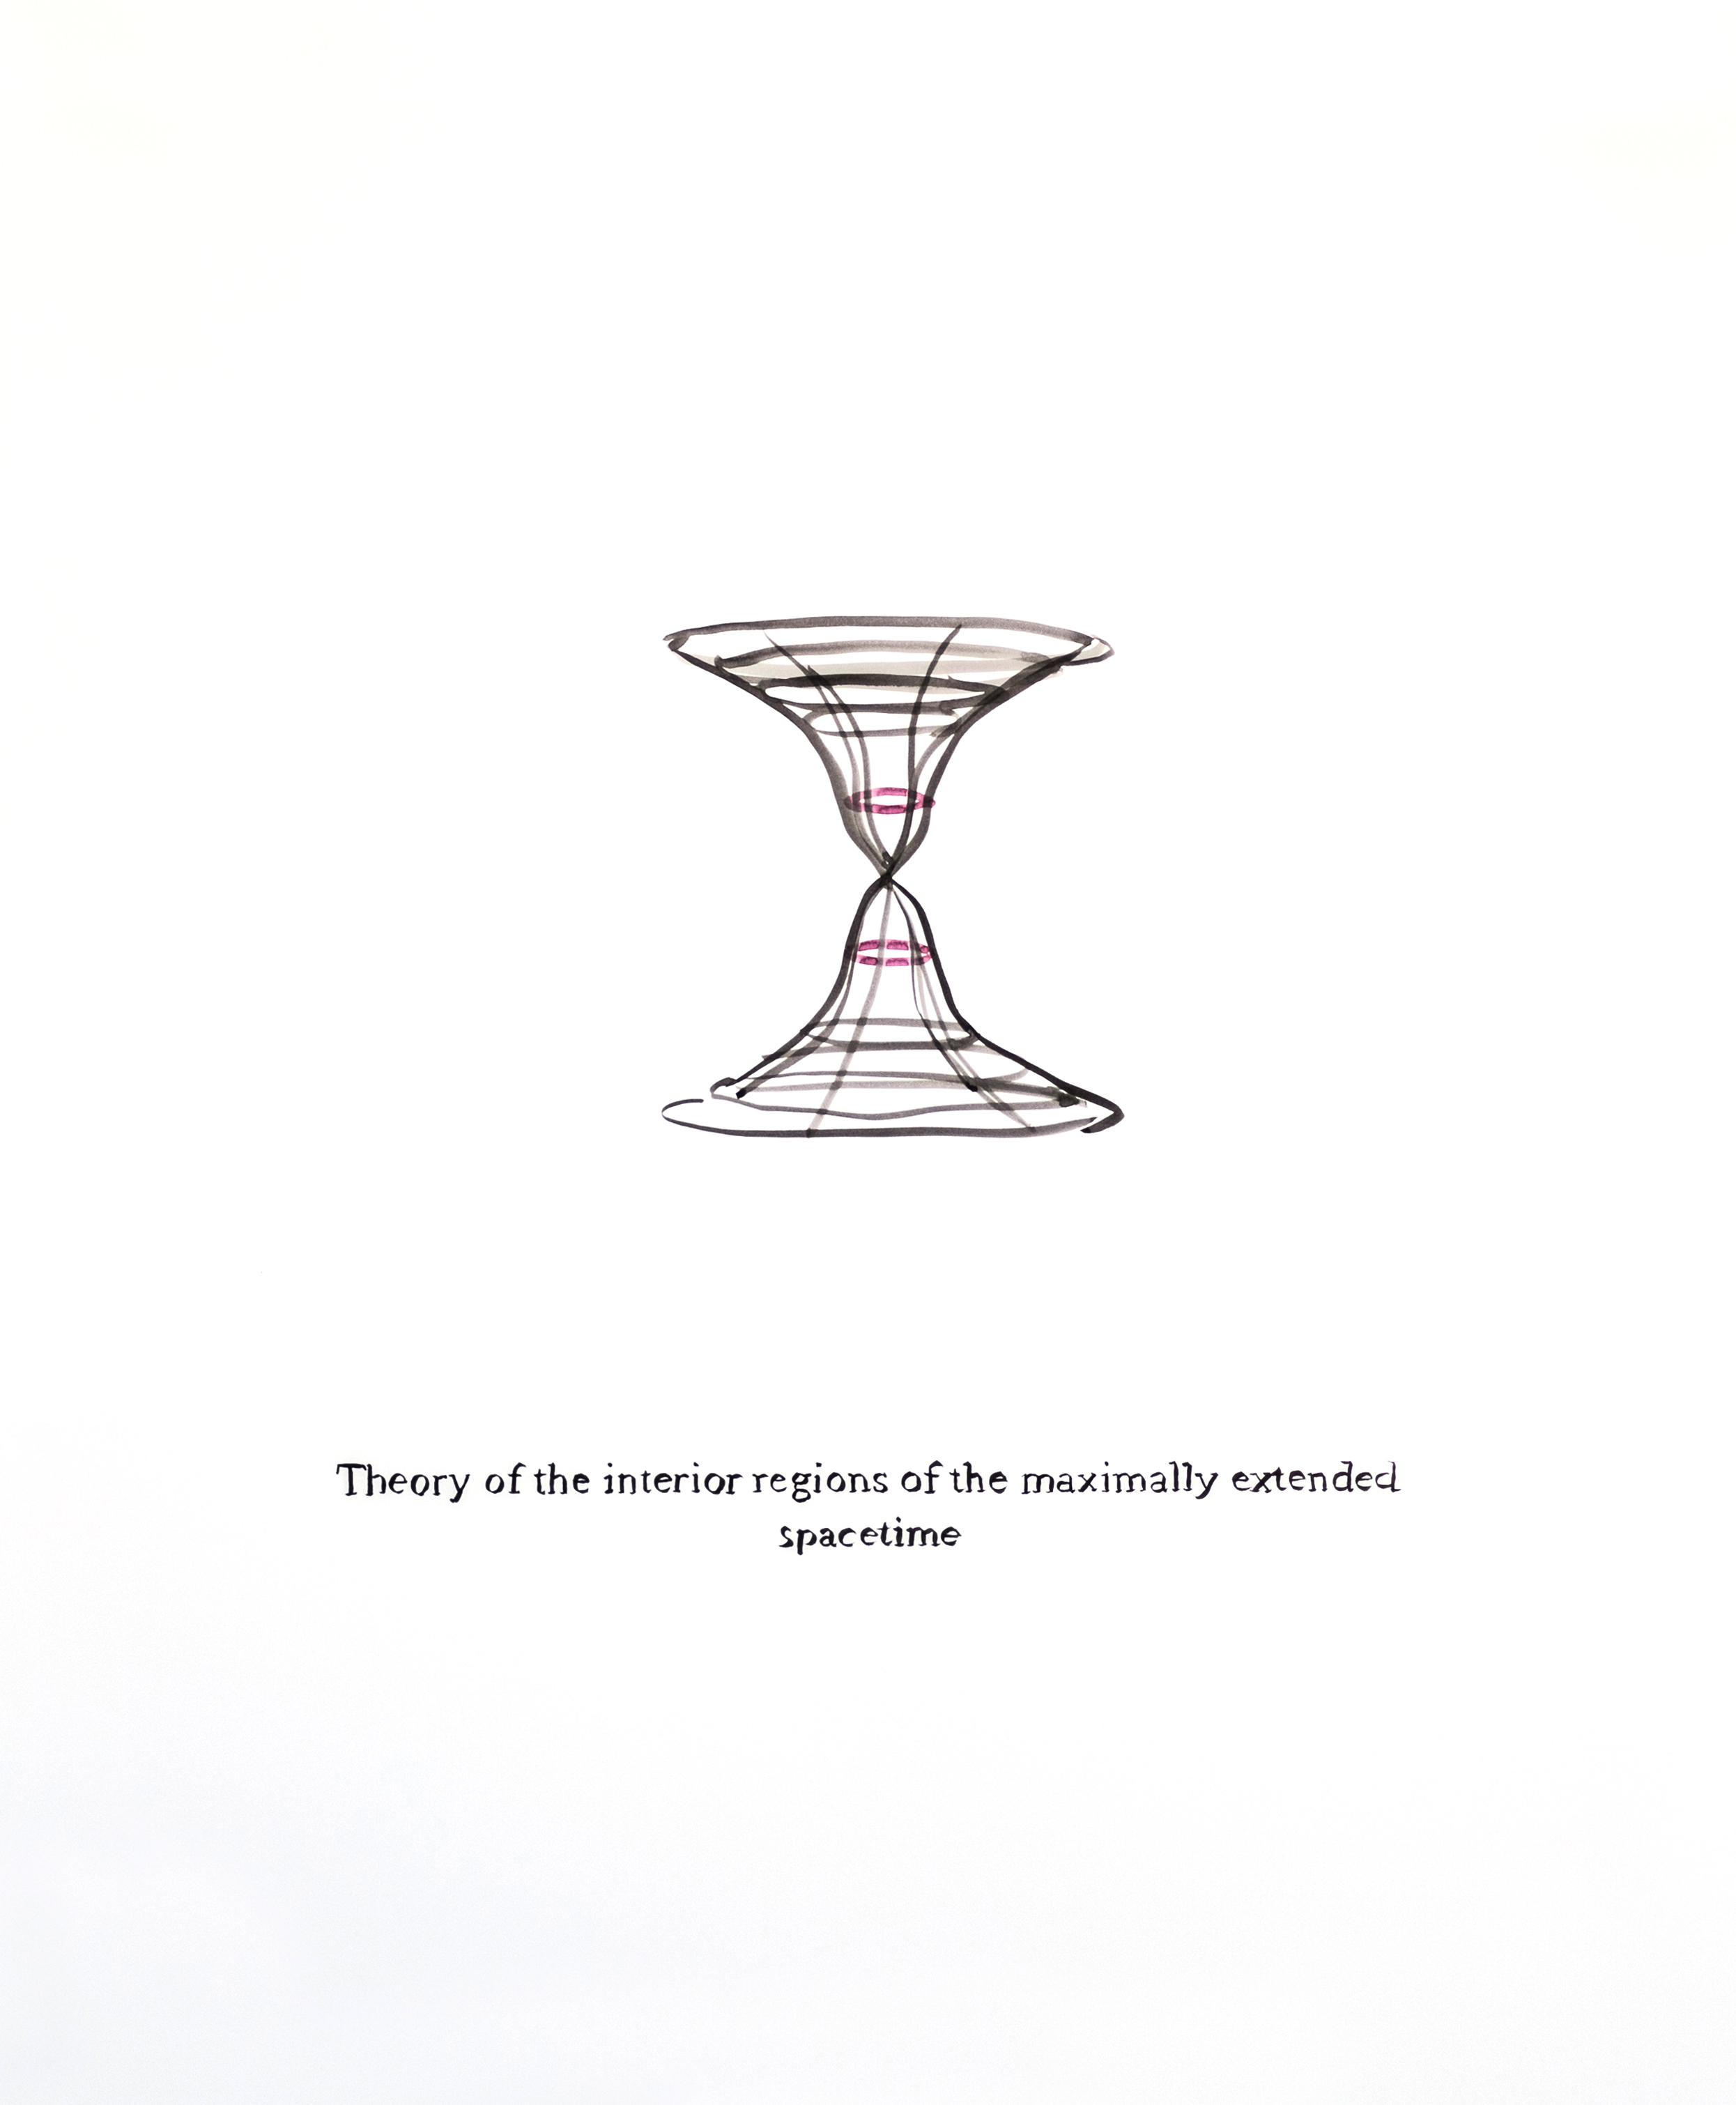 Theory of the Interior Regions of the Maximally Extended Spacetime